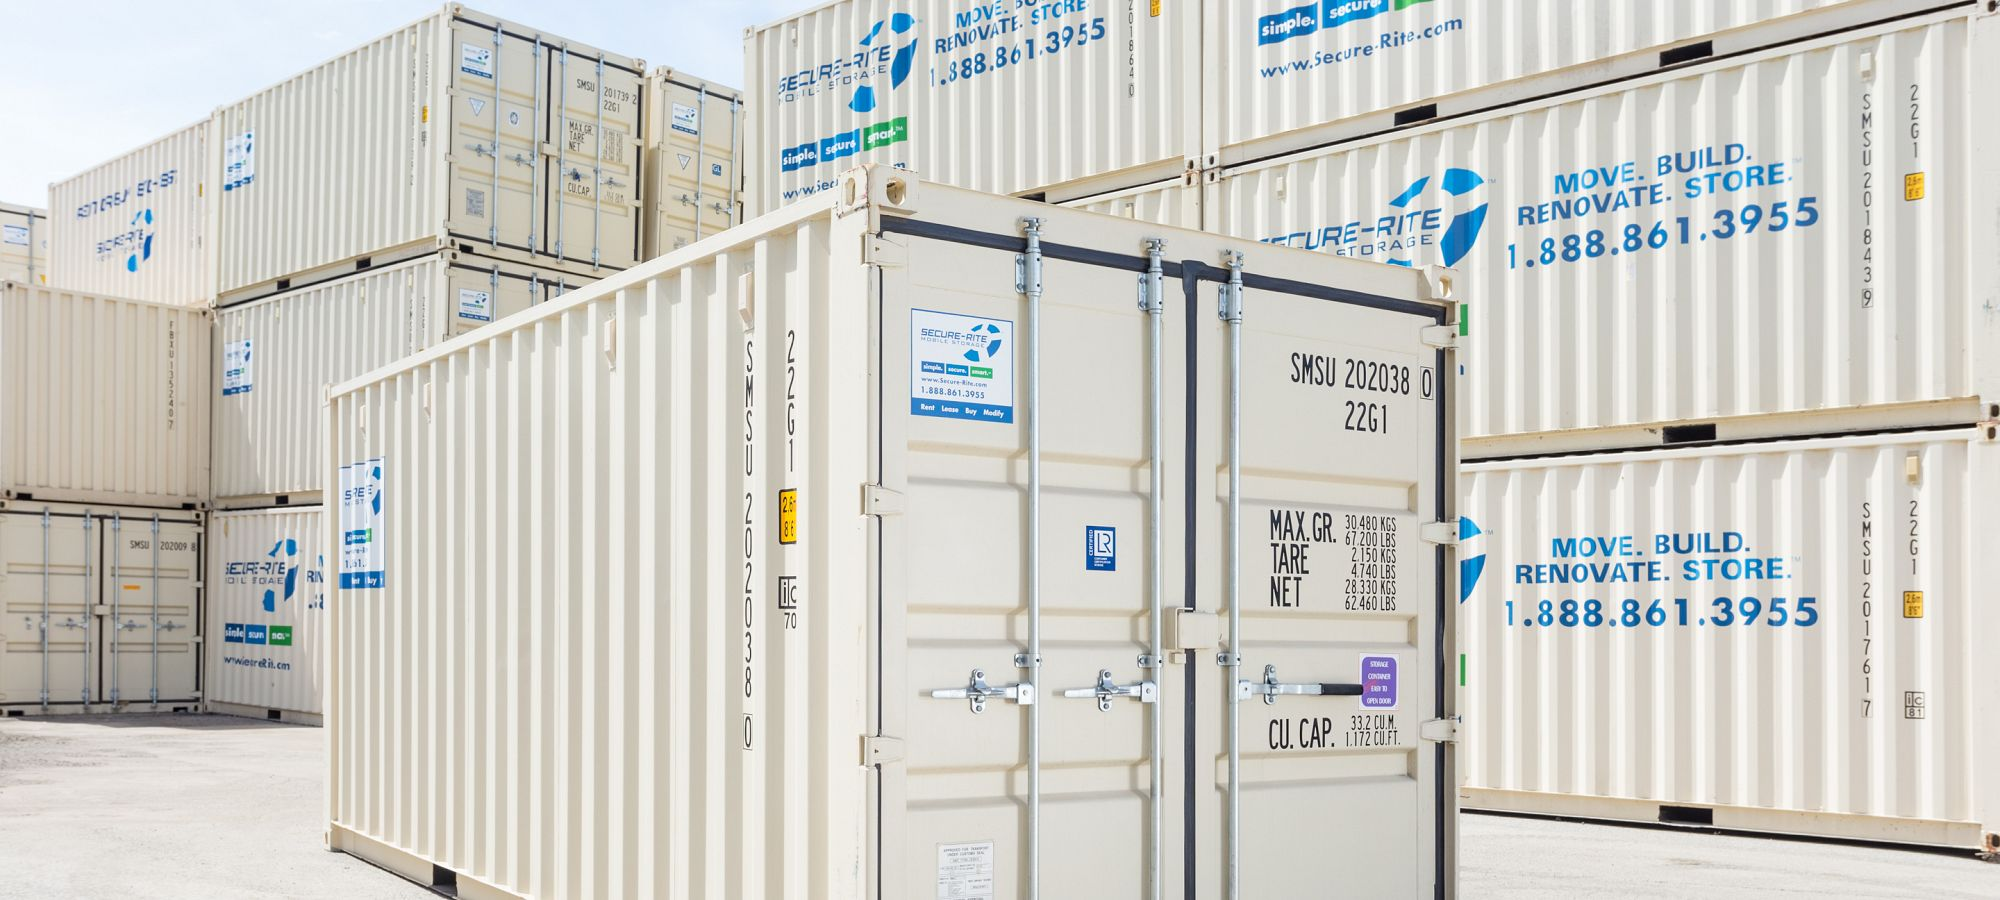 Container Rental Prices - Secure Rite Affordable Container